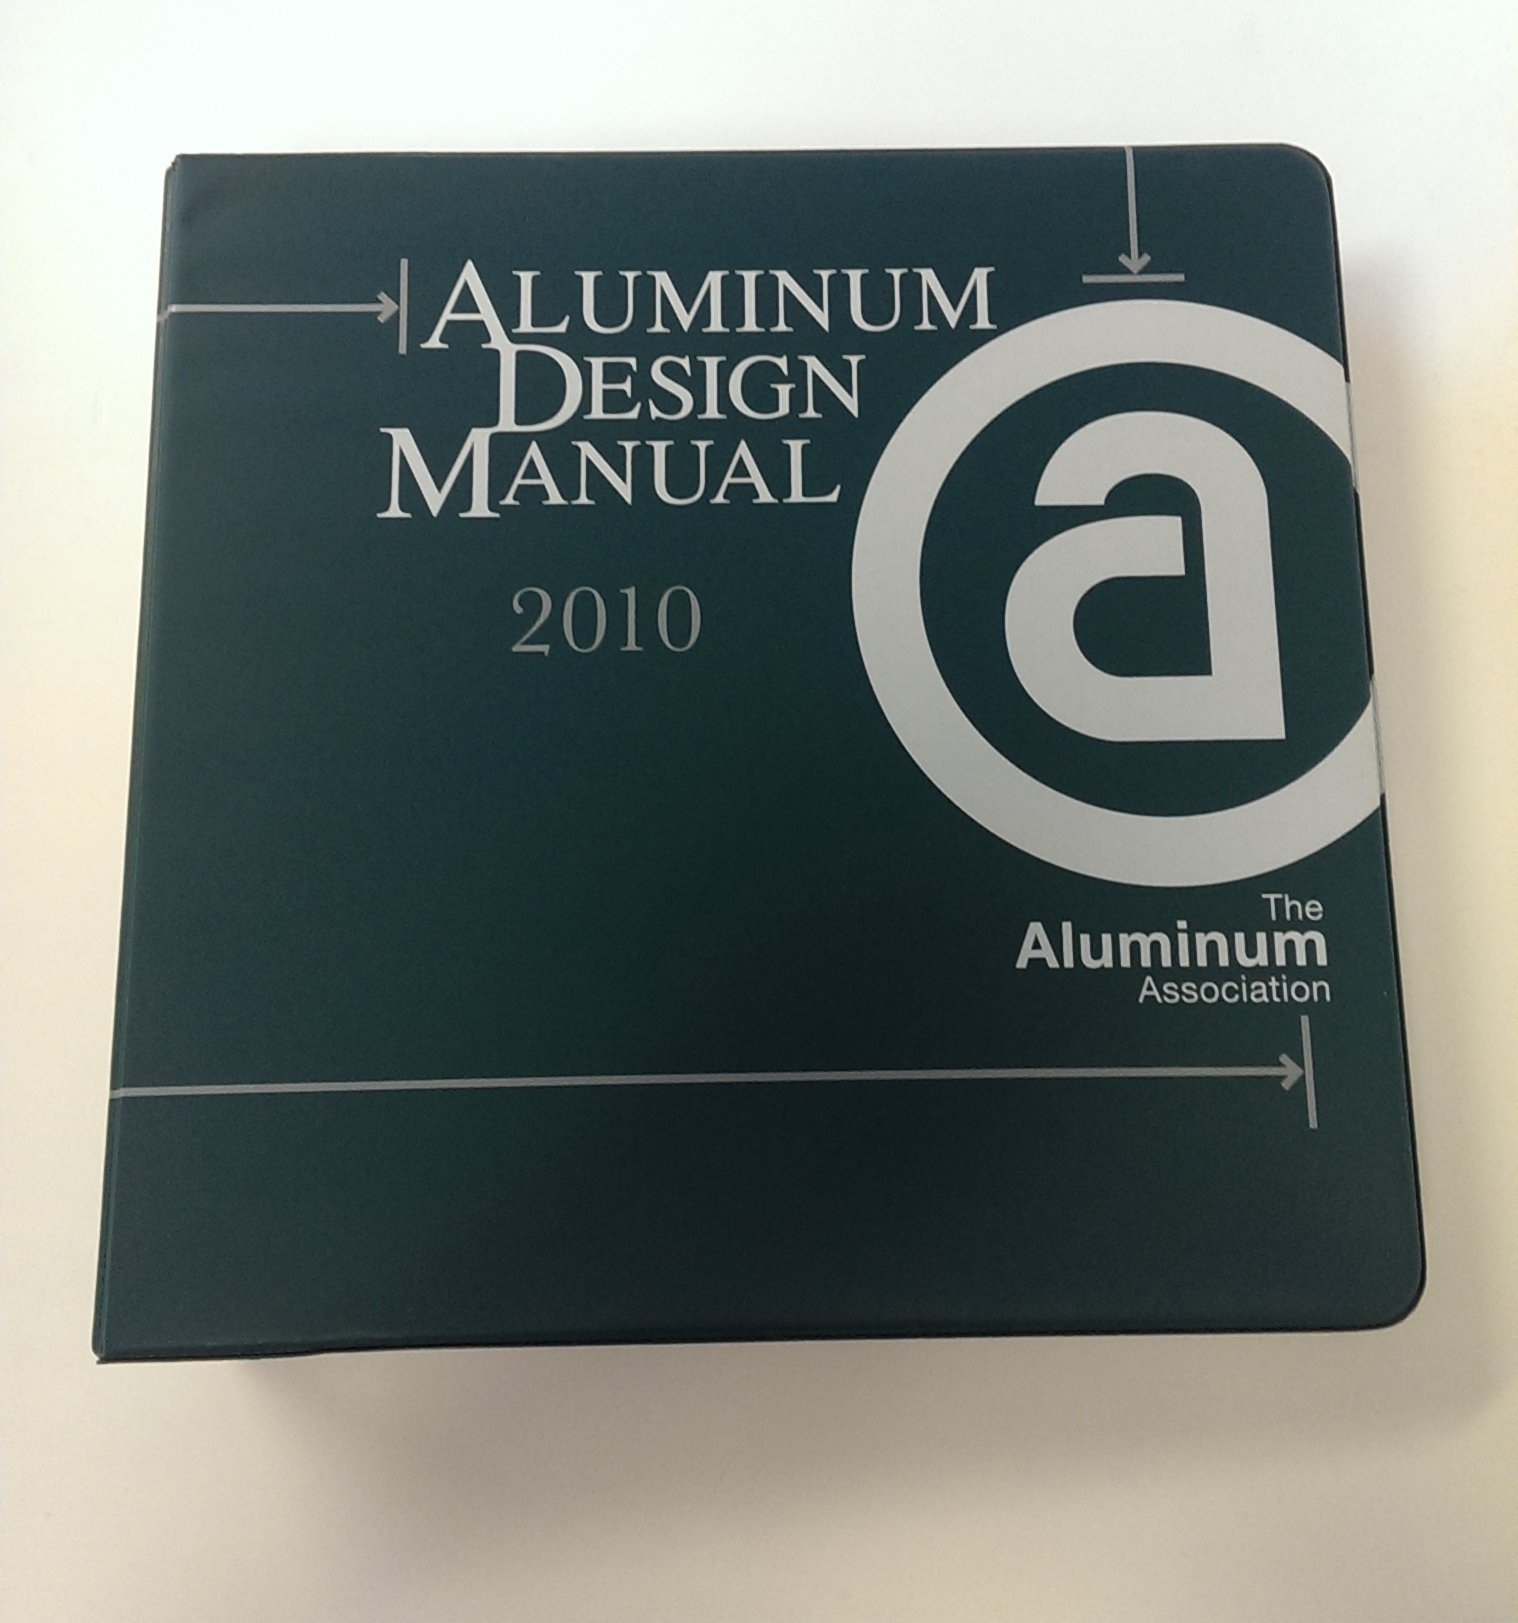 Aluminum Design Manual, 2010 Edition: Aluminum Association: 9780982630808:  Amazon.com: Books